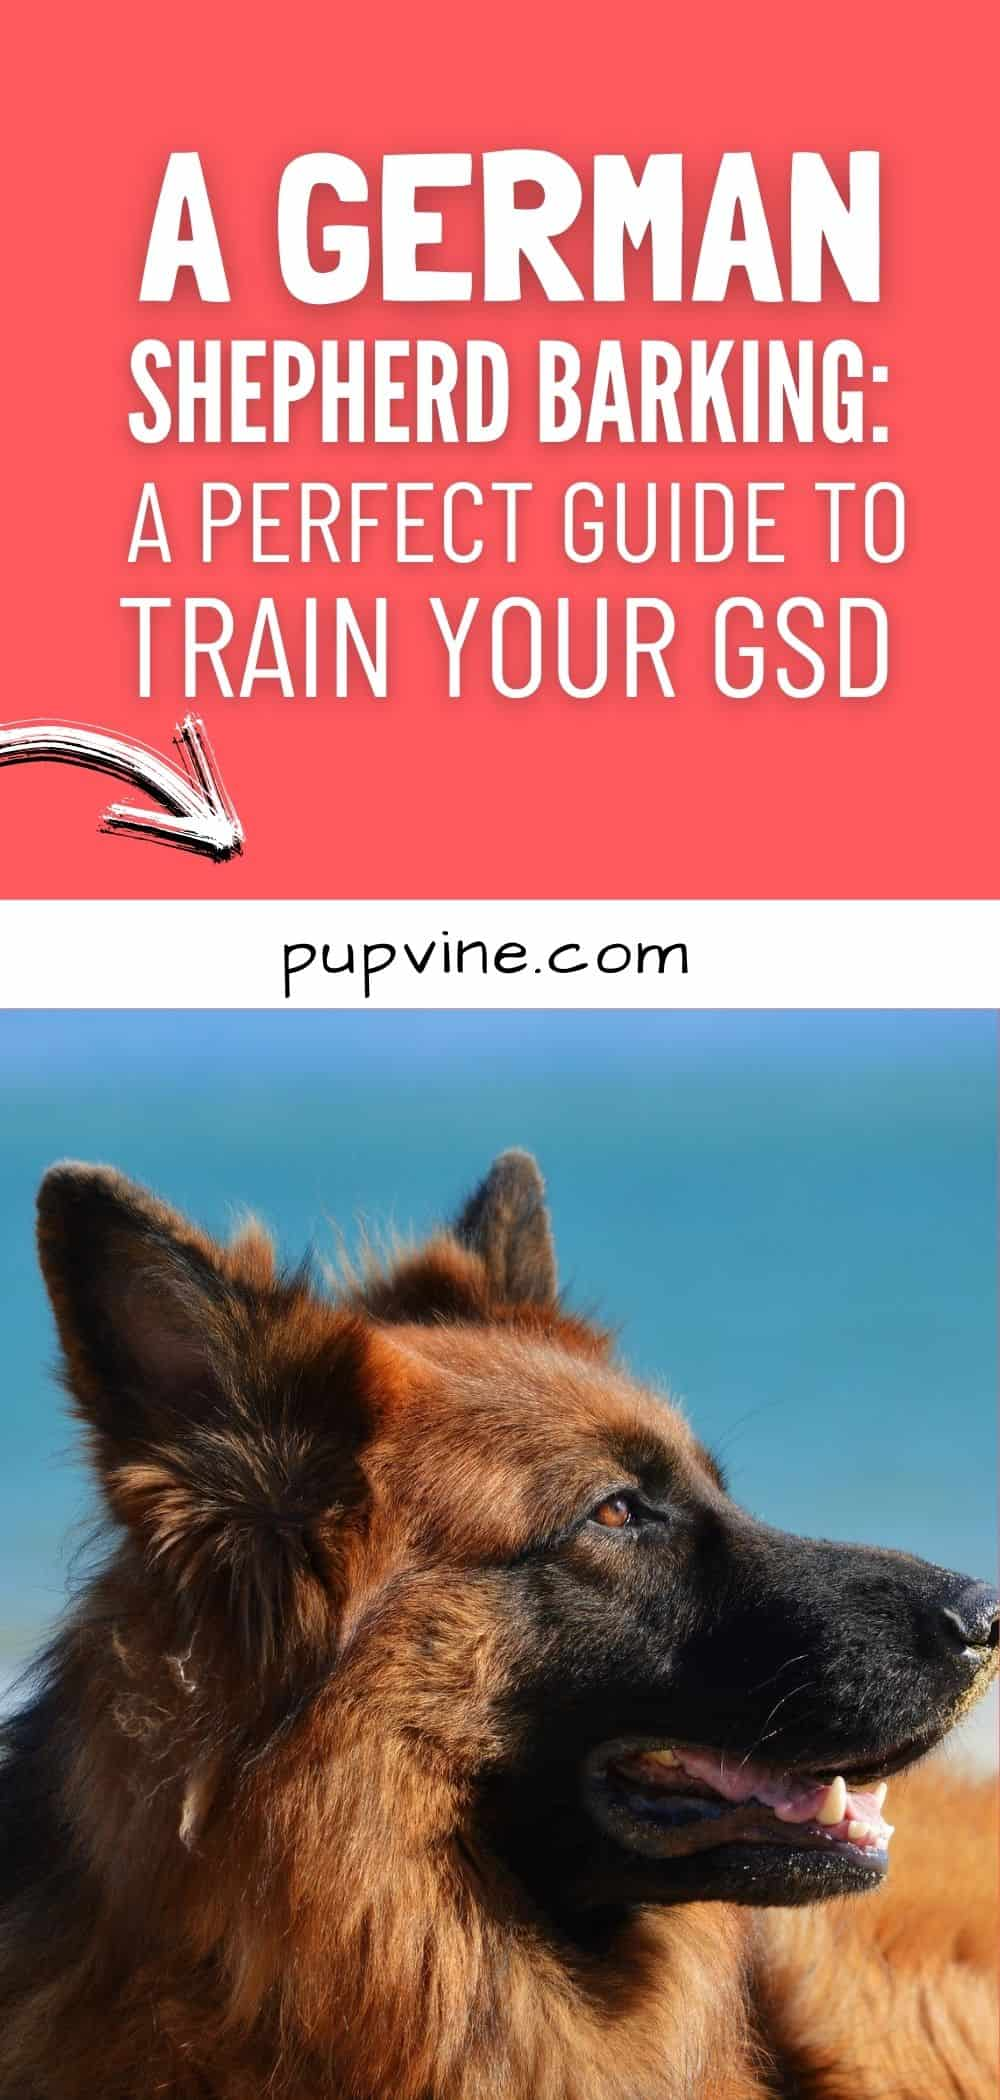 A German Shepherd Barking_ A Perfect Guide to Train Your GSD